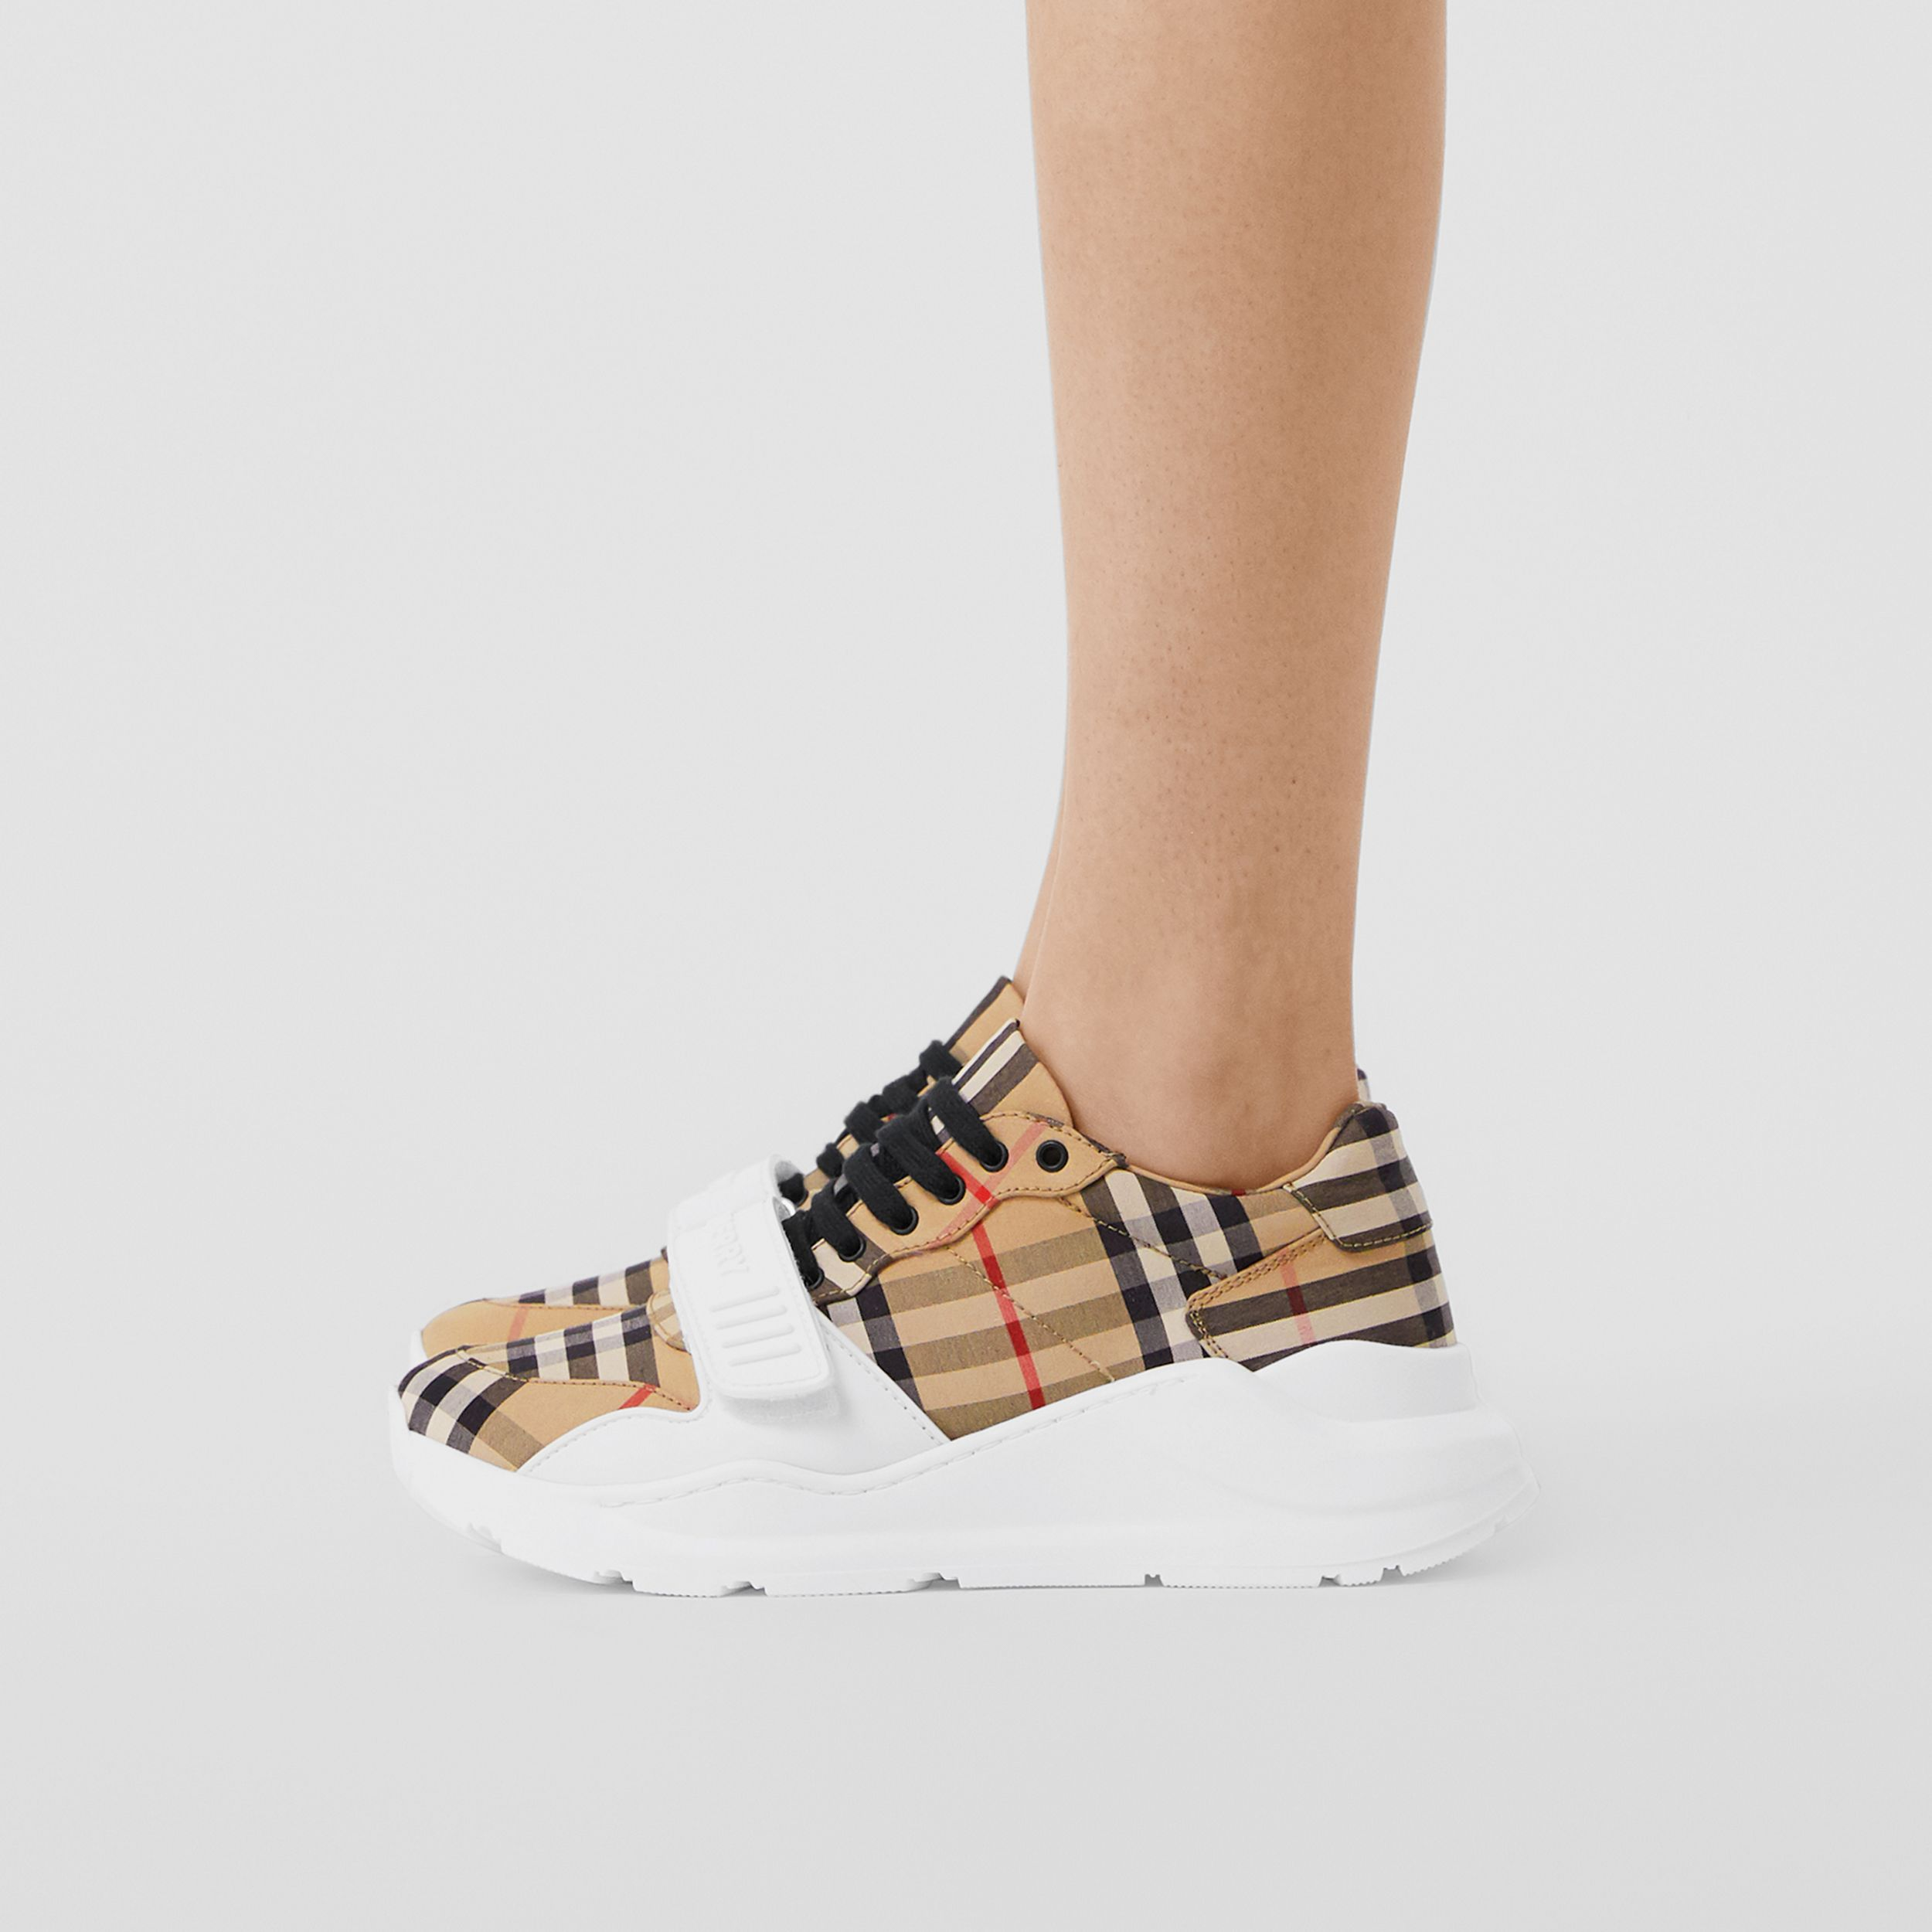 Vintage Check Cotton Sneakers in Archive Beige | Burberry - 3